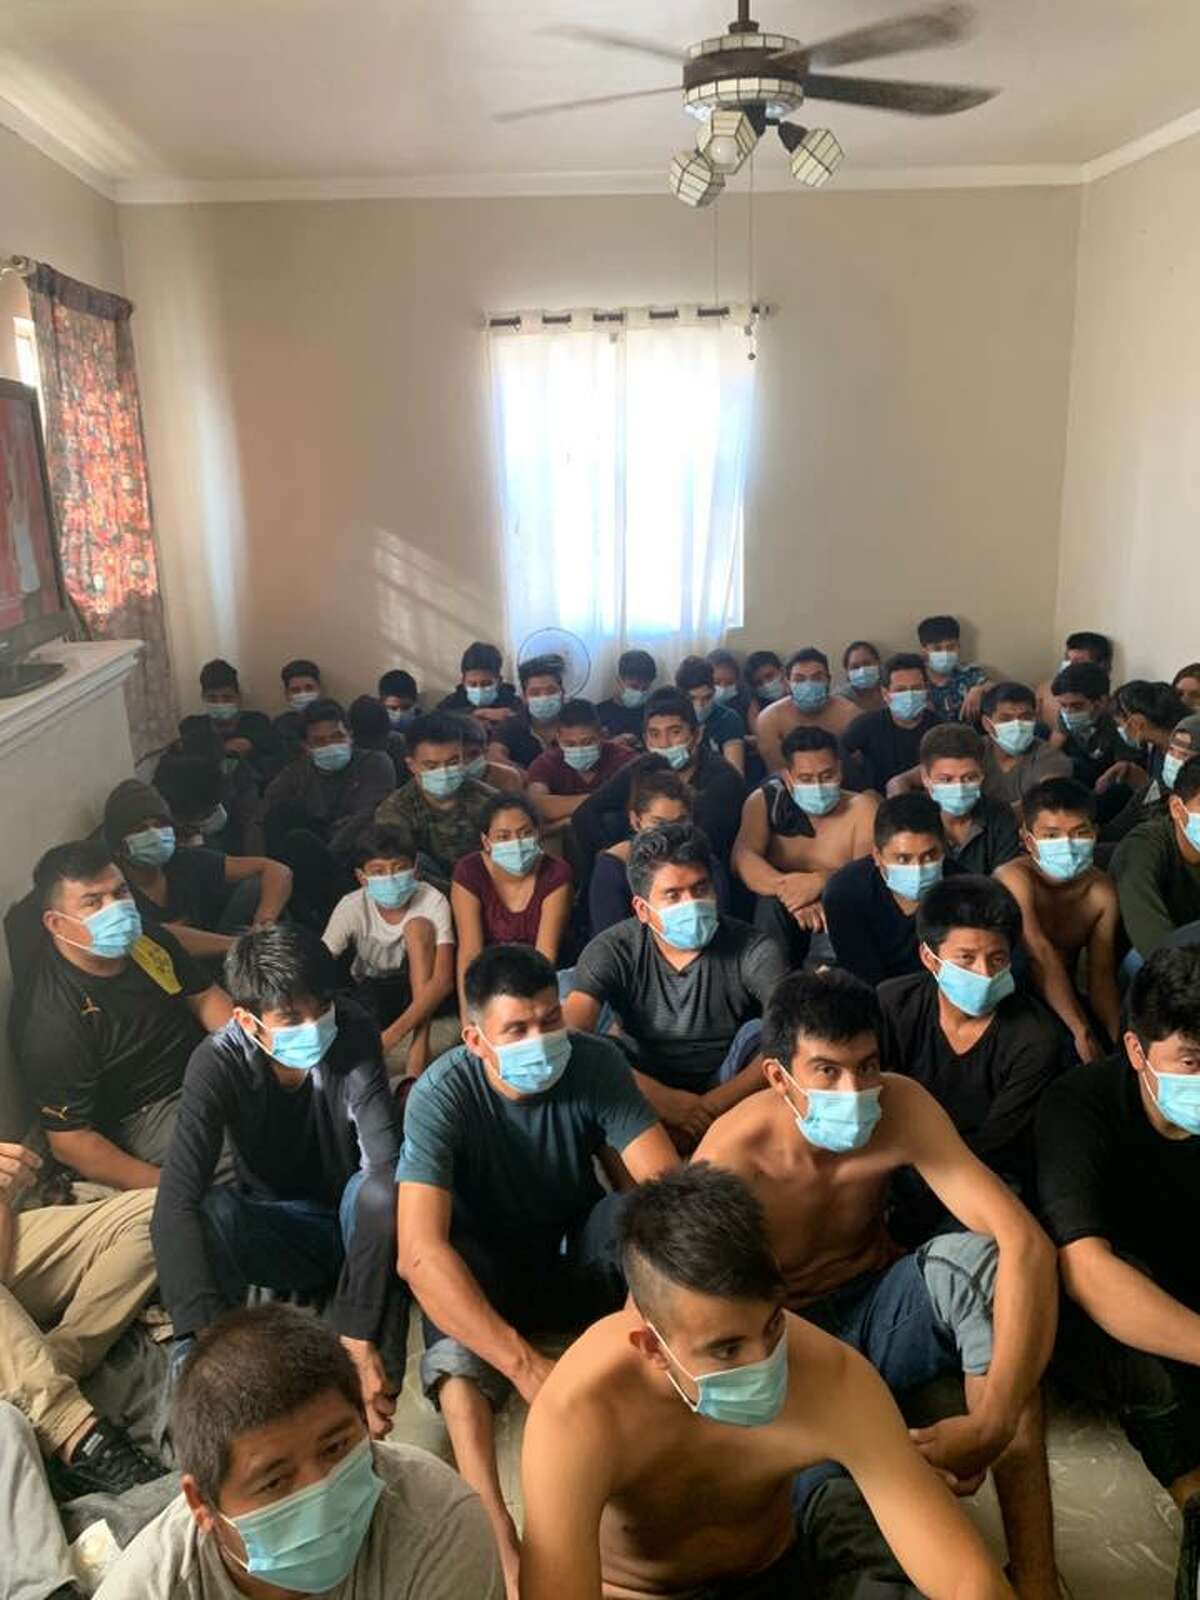 The Webb County Sheriff's Office along with U.S. Border Patrol agents discovered on Tuesday more than 120 people inside a stash house located in the Las Lomas neighborhood in central Laredo.